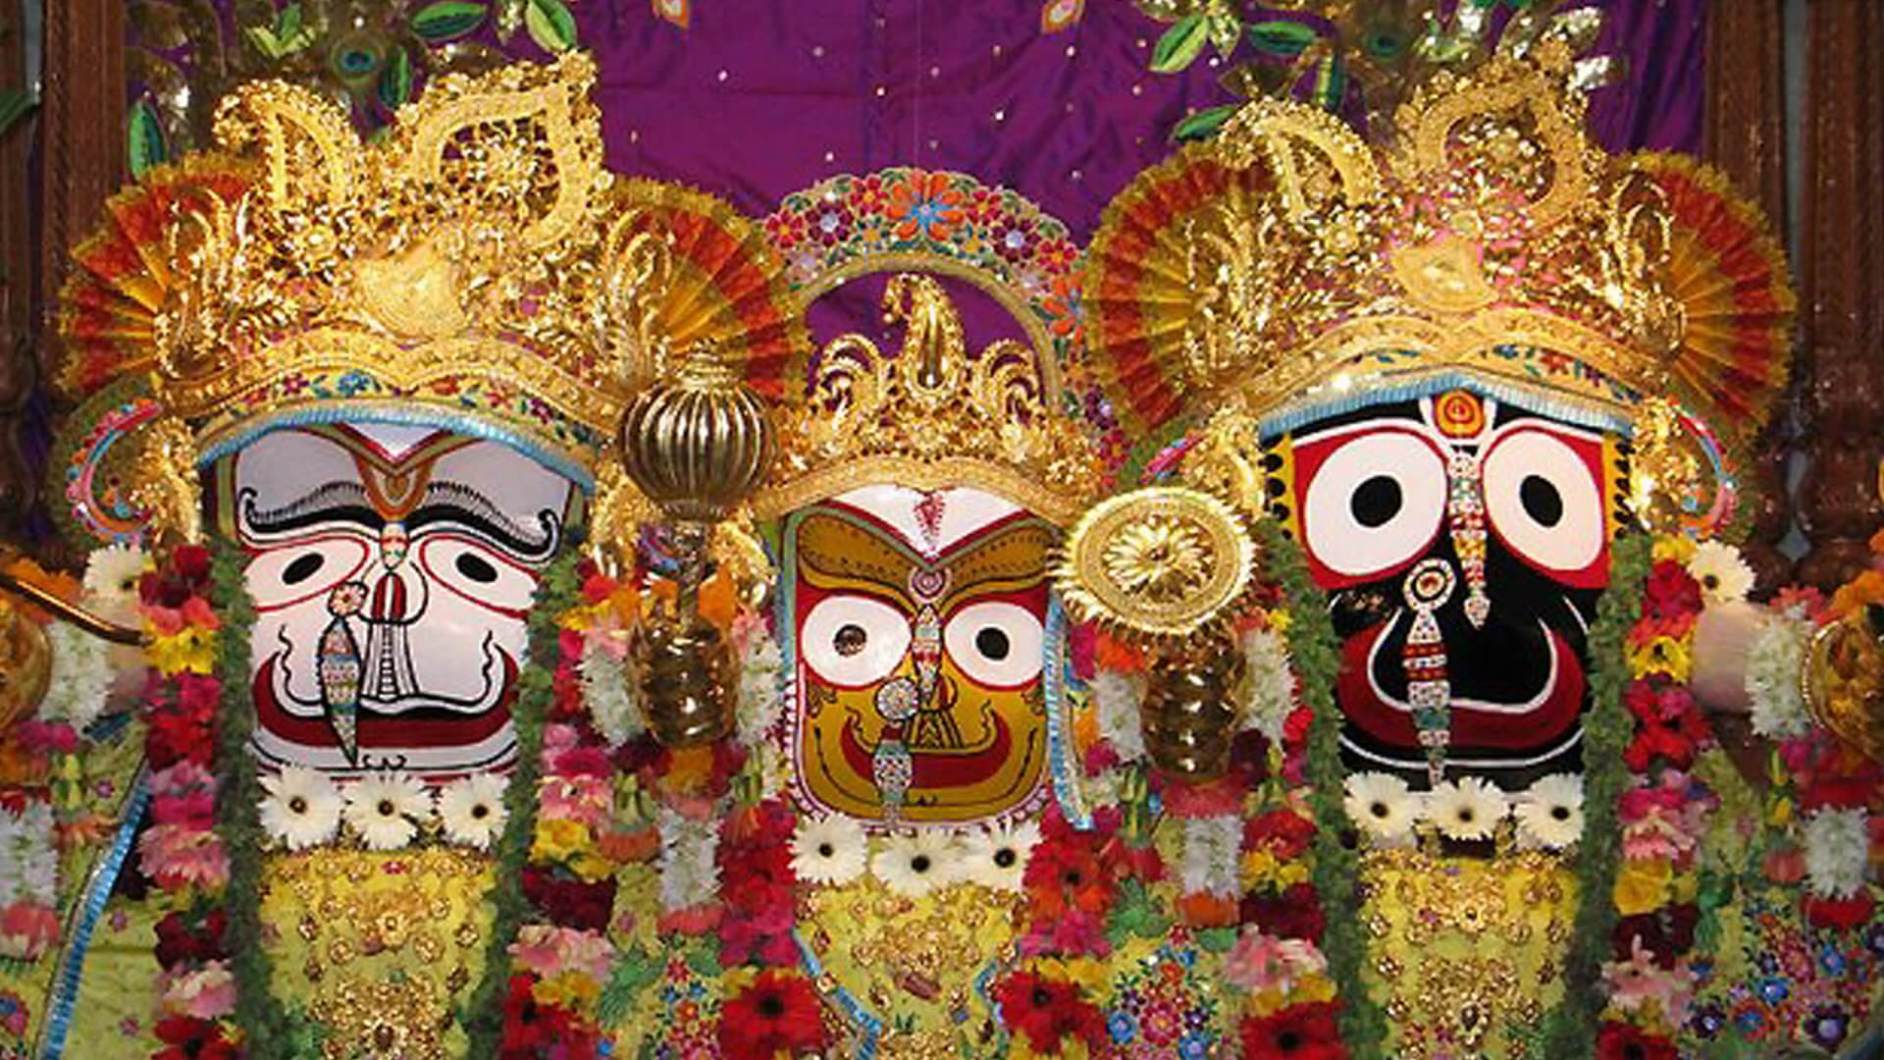 The unfinished Jagannath idol at Puri